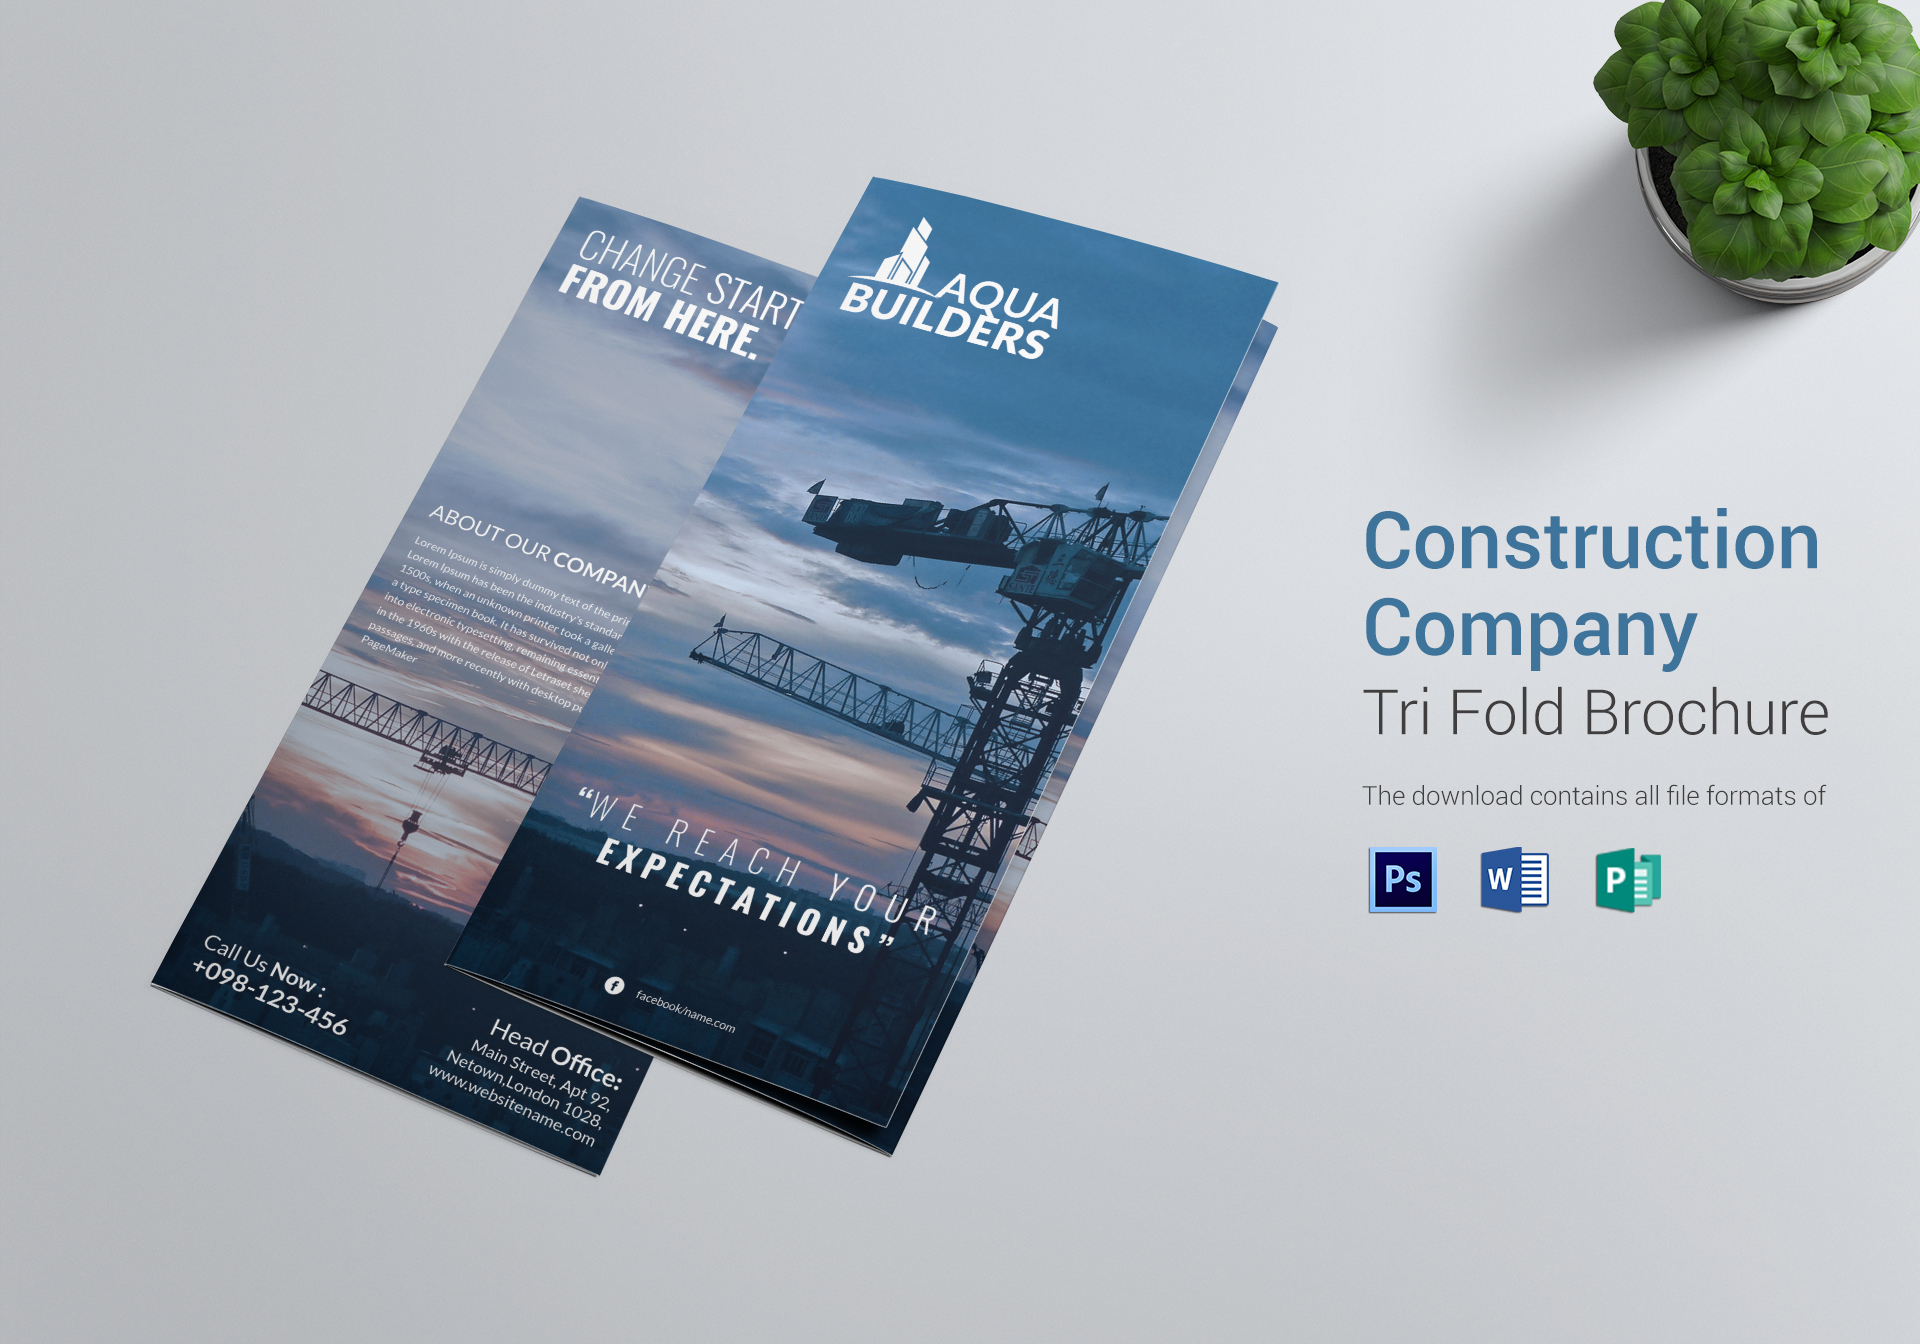 Construction company tri fold brochure design template in for Company brochure design templates